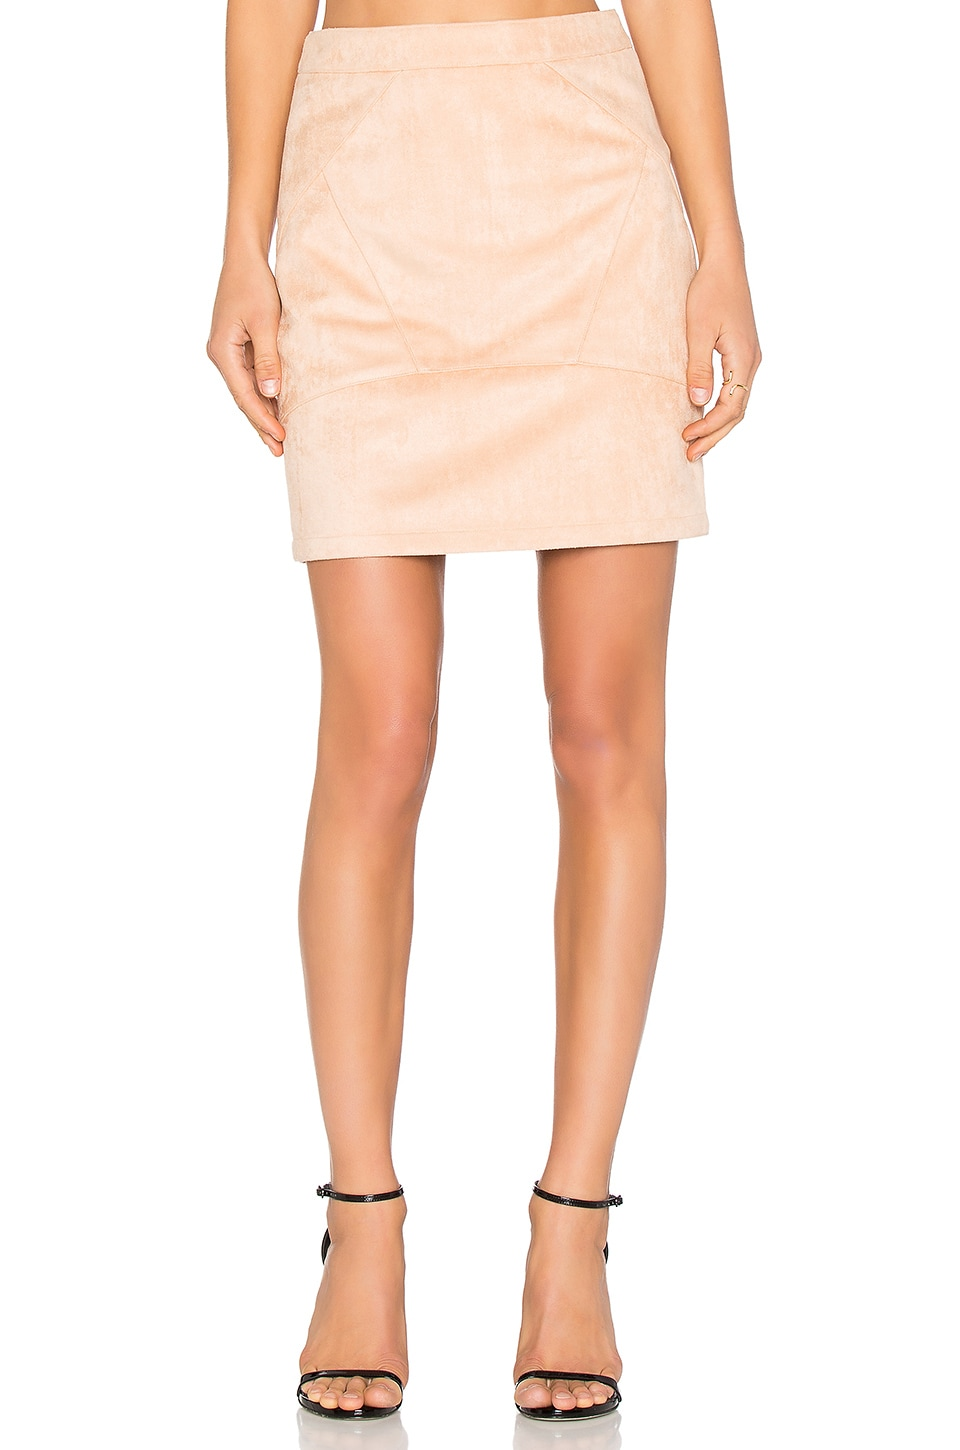 In Control Skirt at REVOLVE